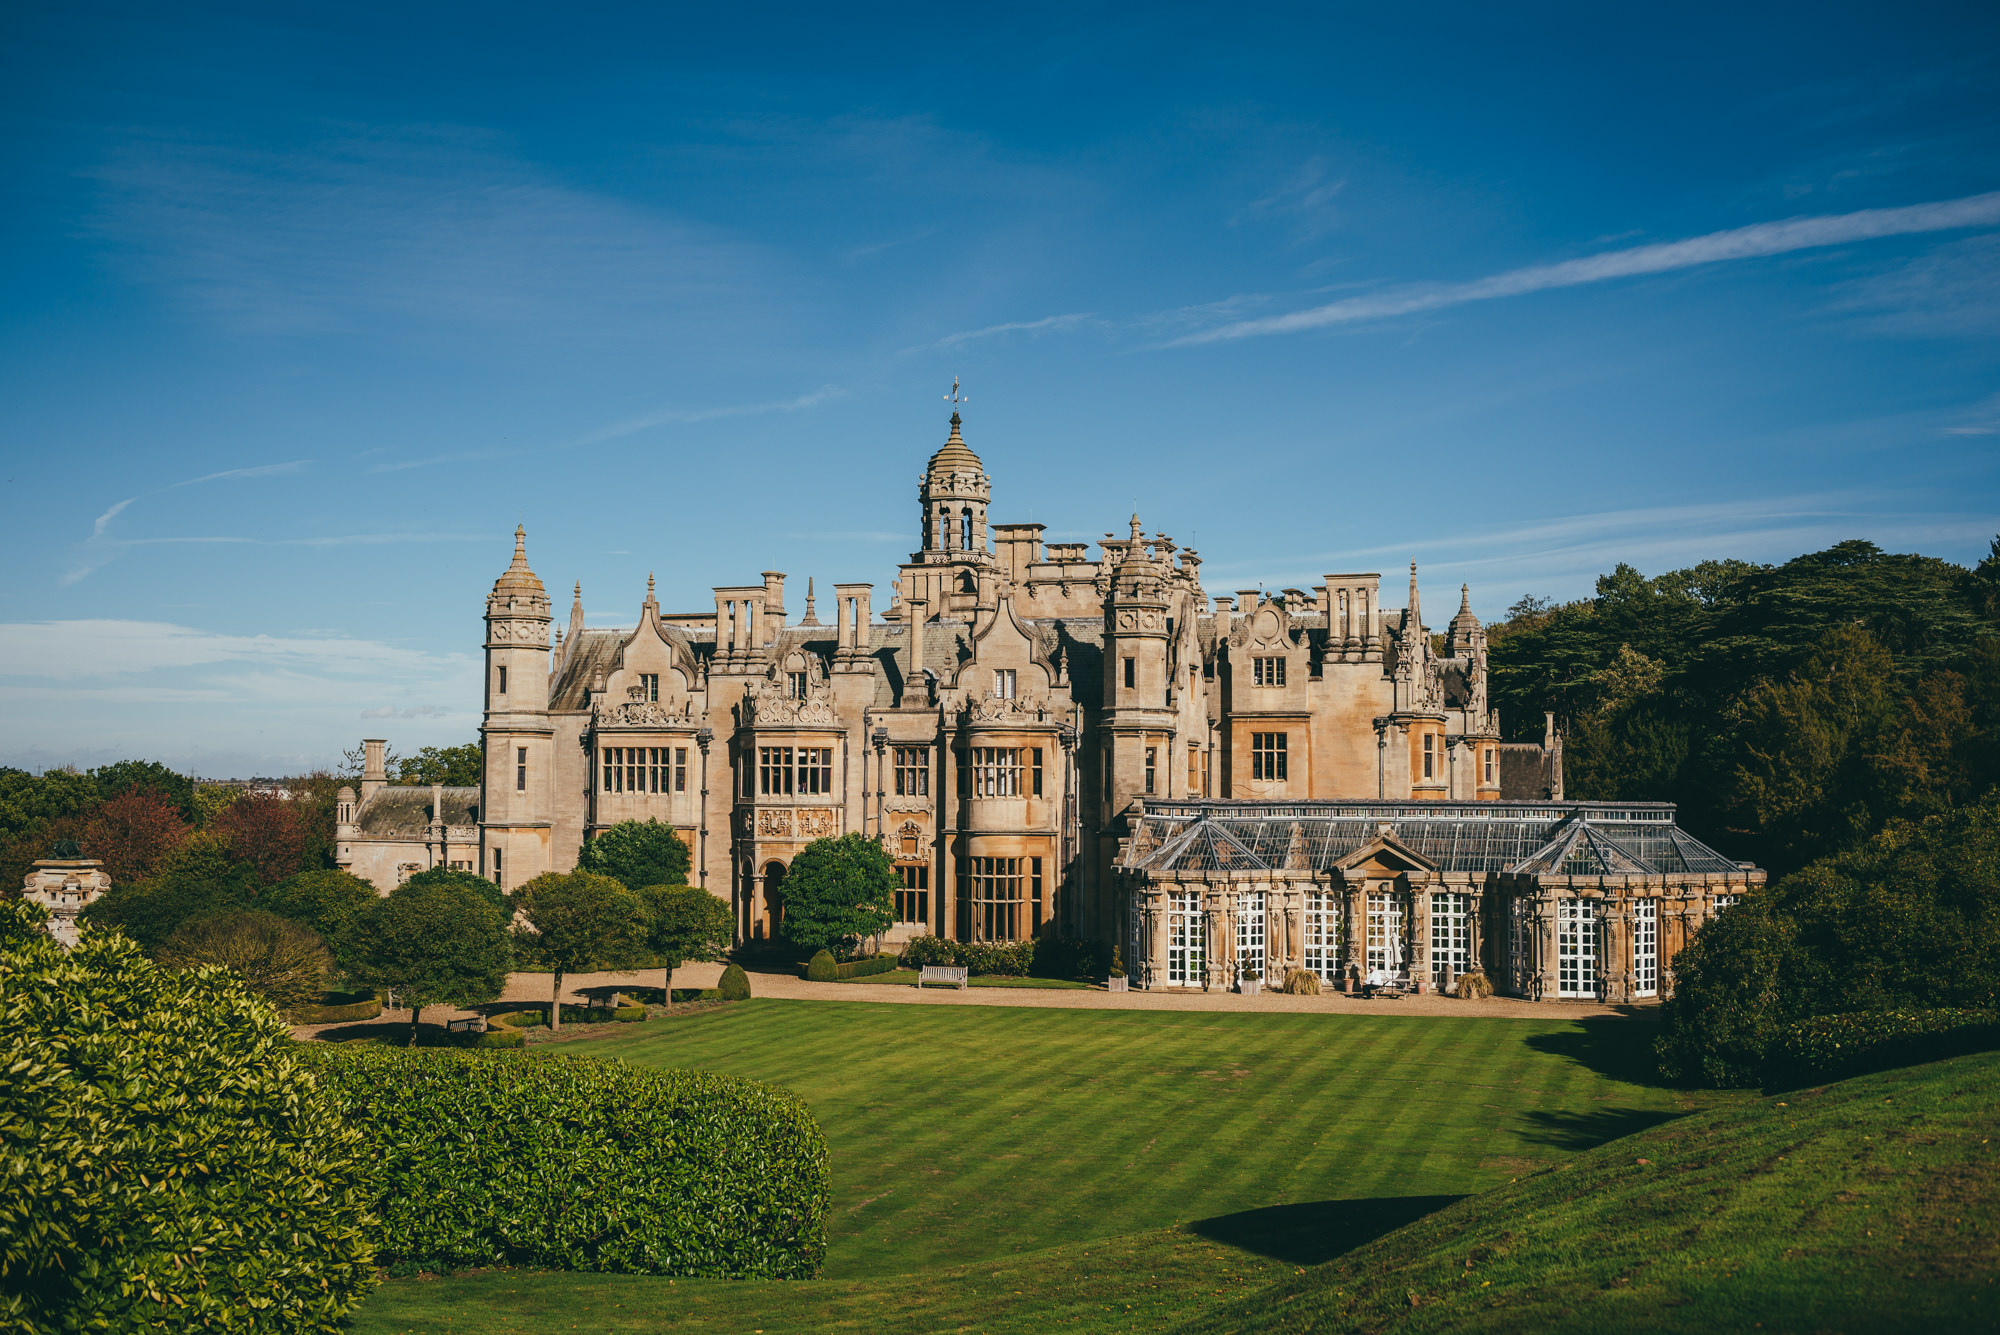 High up view of harlaxton manor